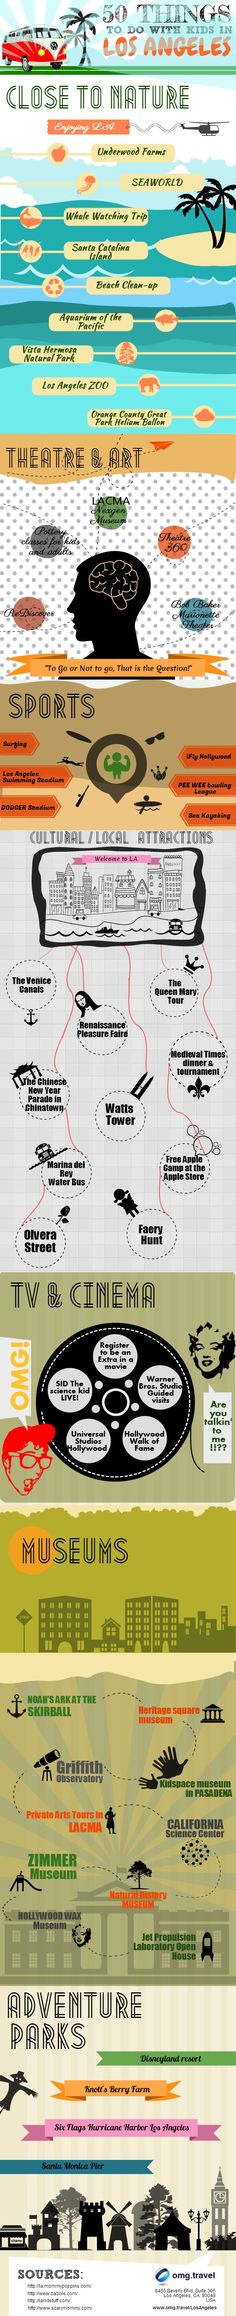 50 Things To Do With Kids In Los Angeles #Infographic  I miss LA!  I haven't been since ...in a long time!